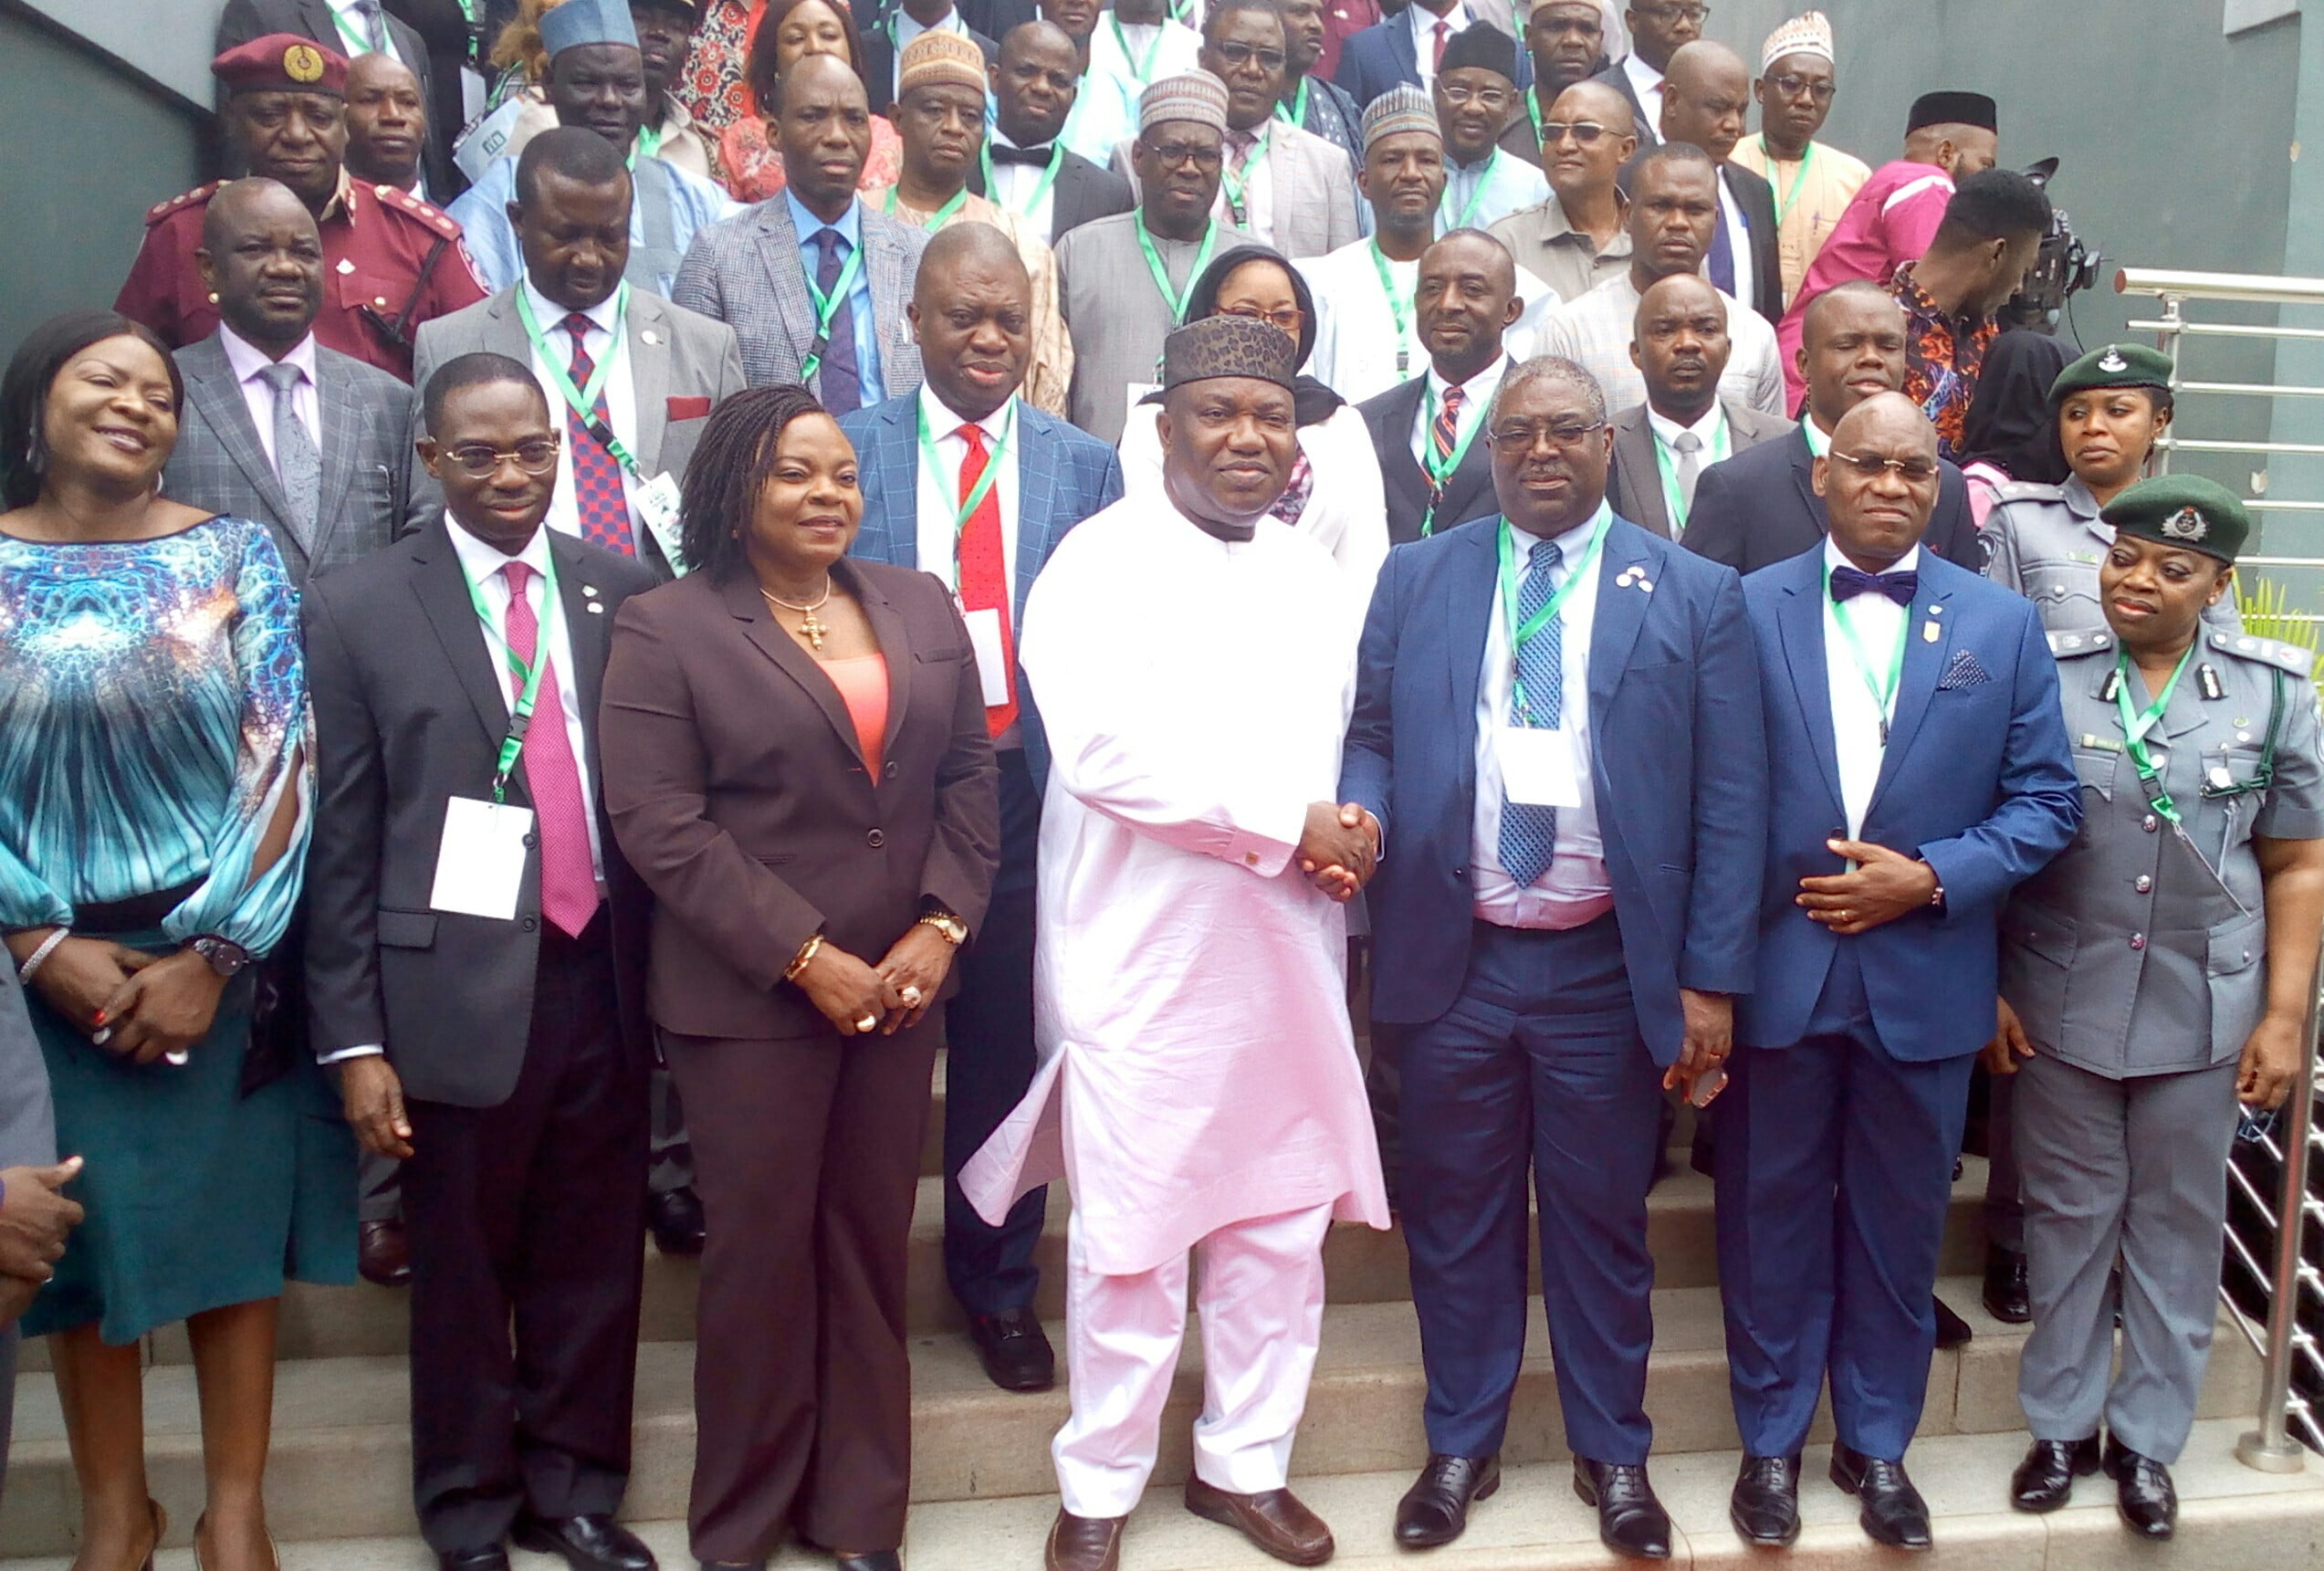 Enugu State Govt. To Seal Off 3,000 Institutions Over Tax Evasion